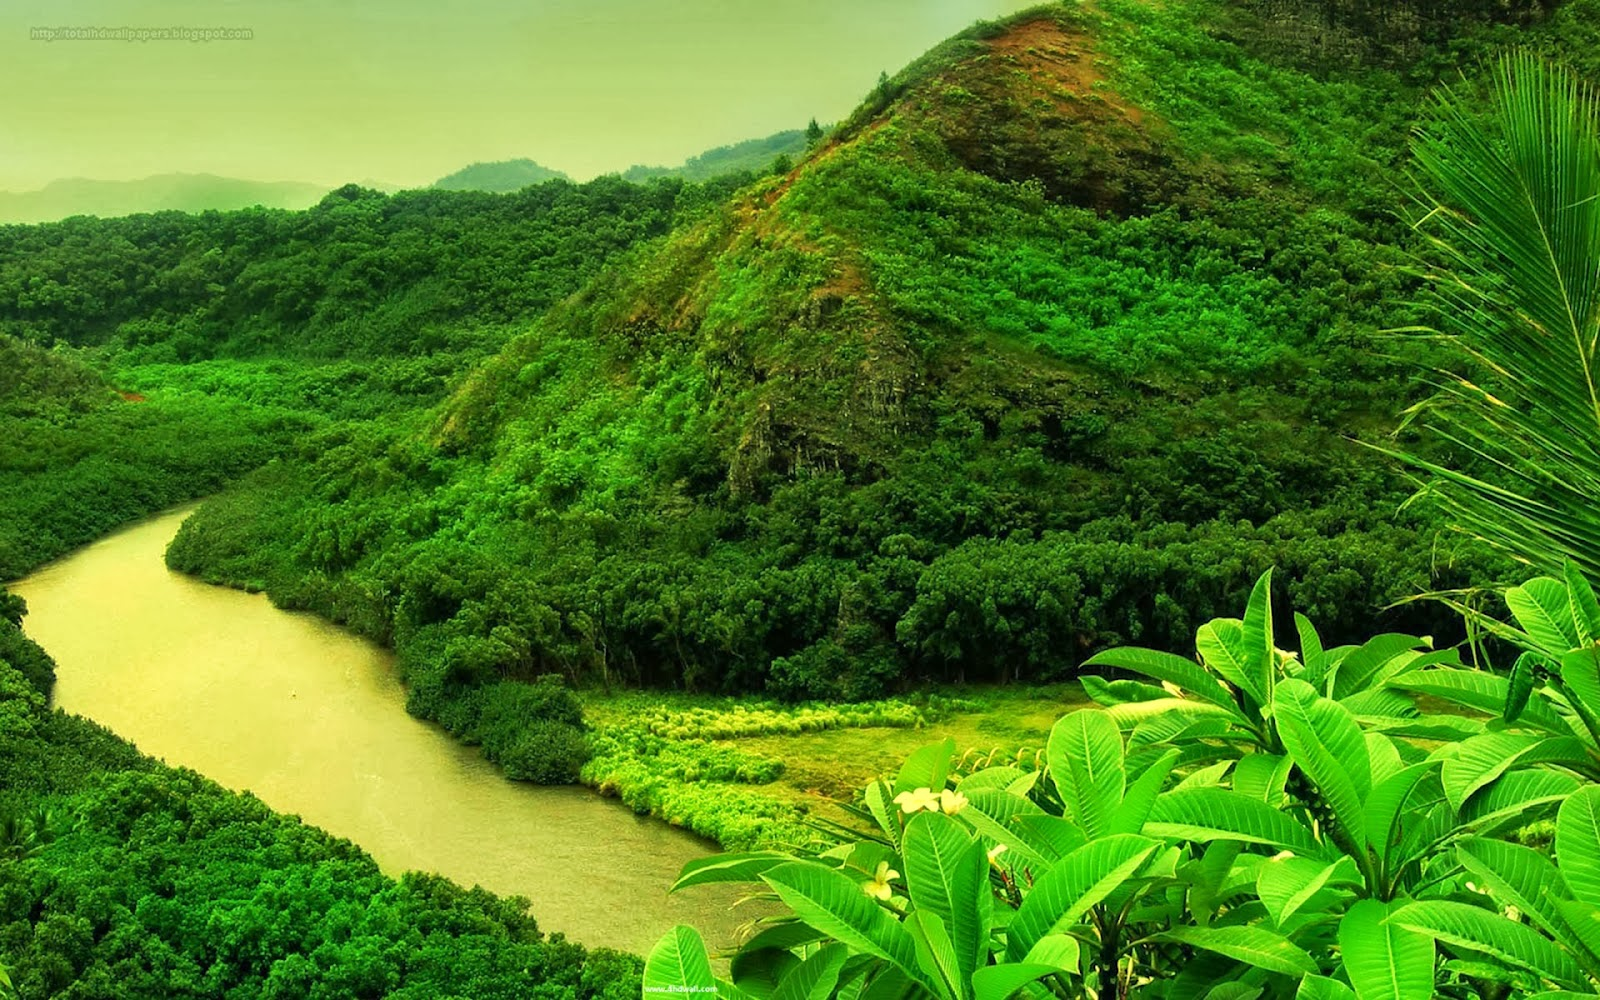 Most Beautiful Green Nature Widescreen HD Desktop Backgrounds Images Wallpapers